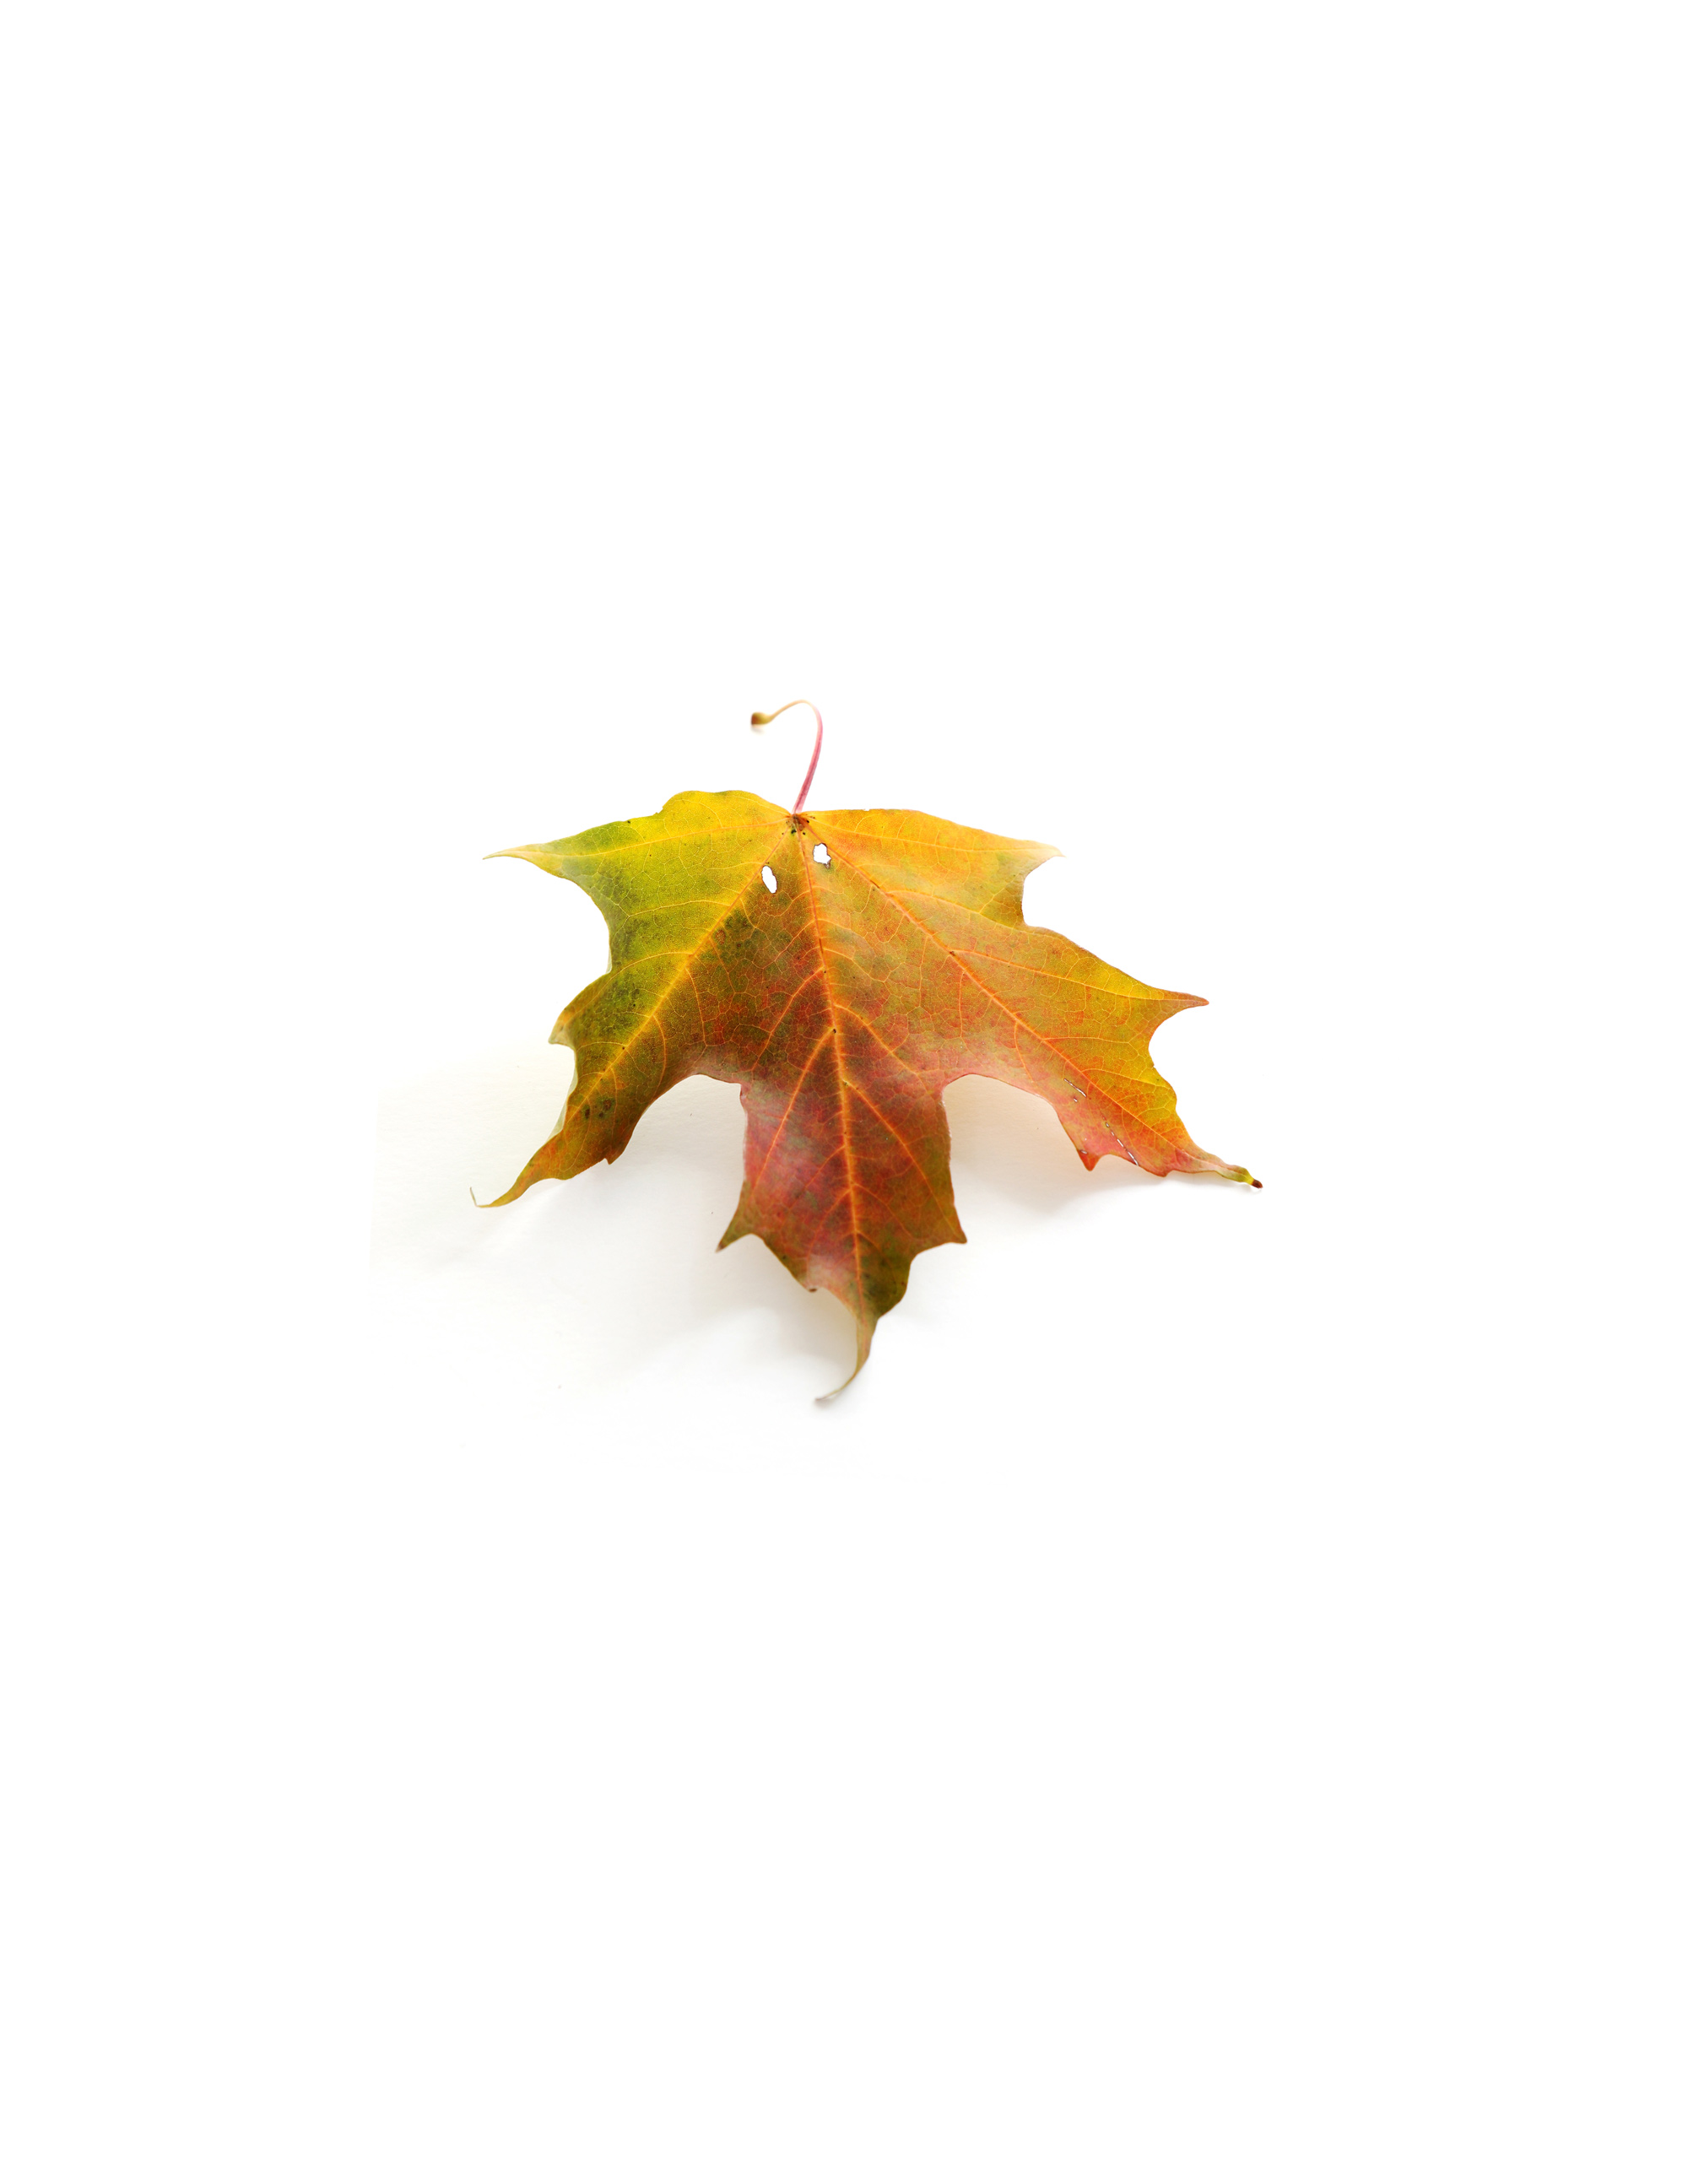 all of autumn in one leaf